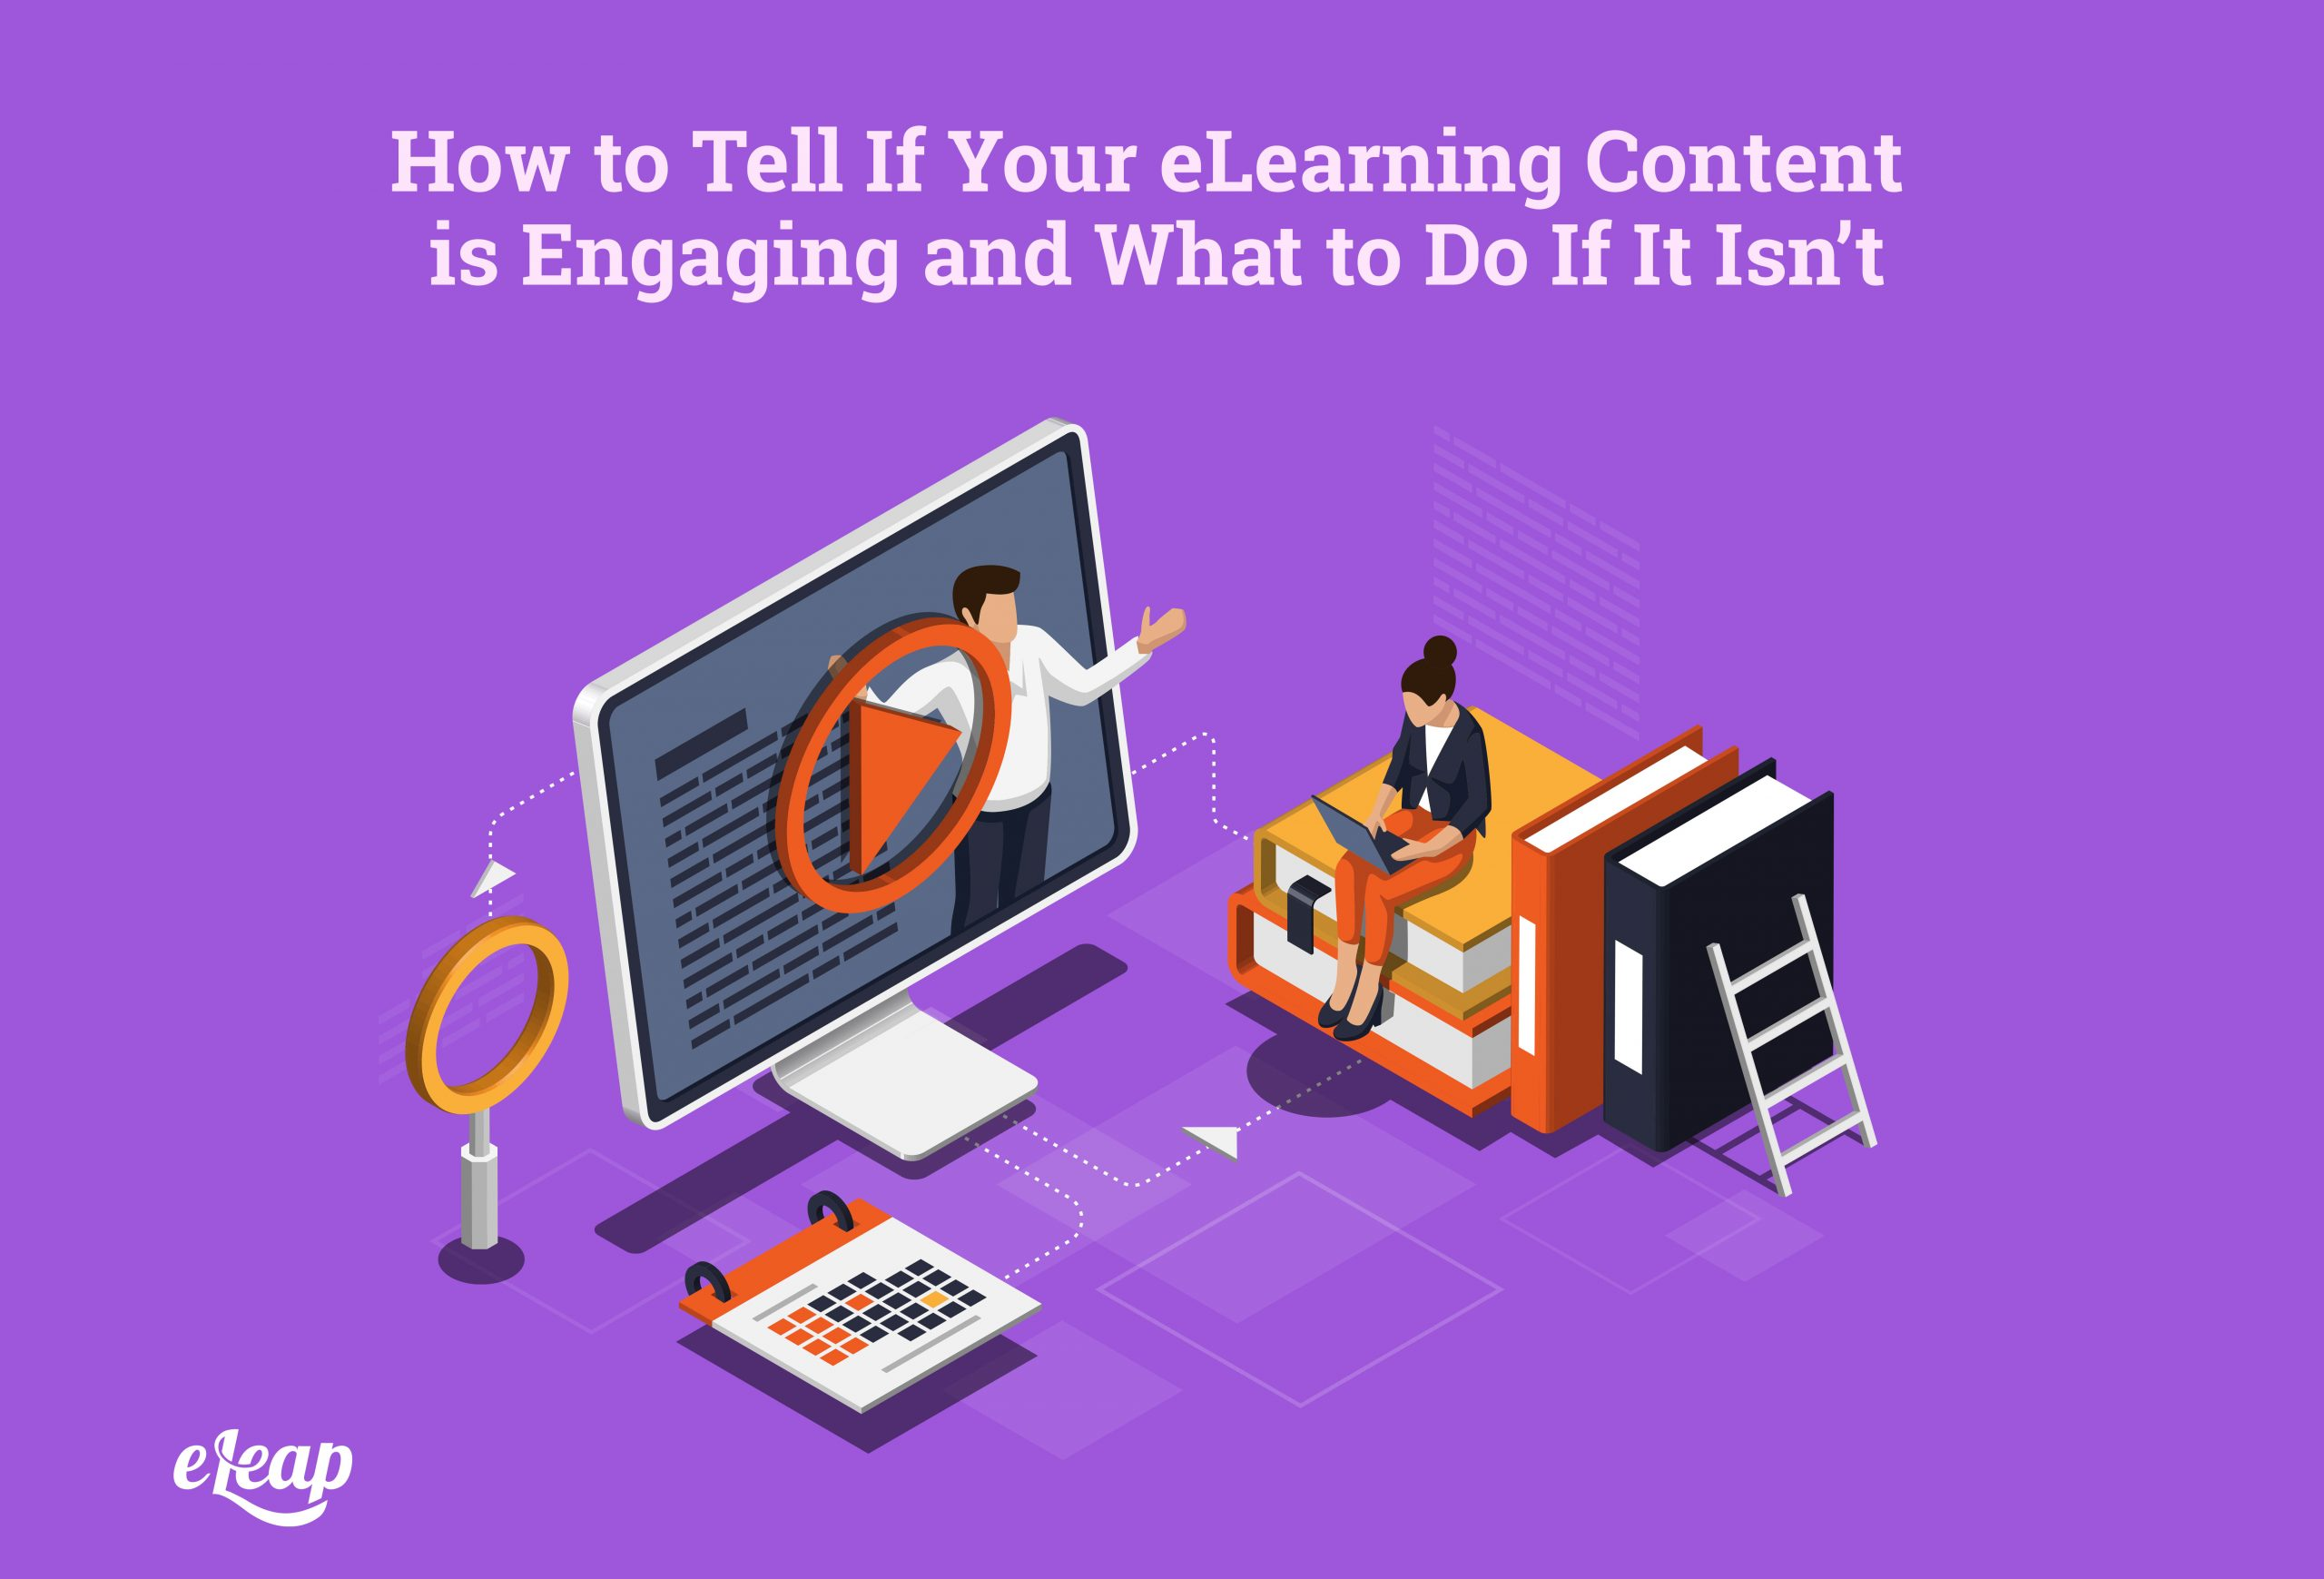 How to Tell If Your eLearning Content is Engaging